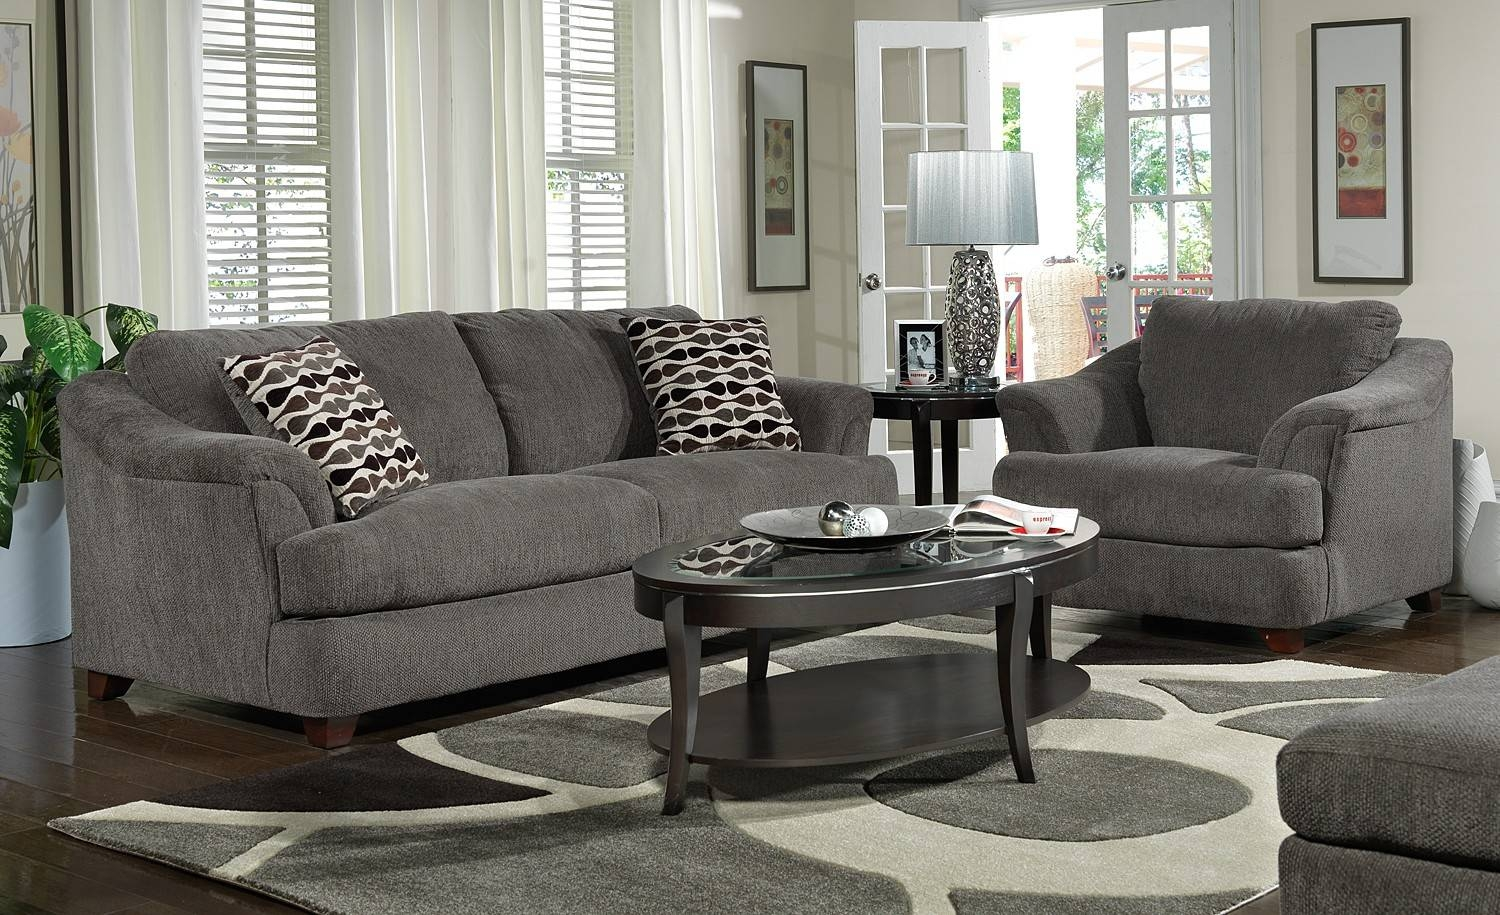 Dark Grey Living Room Furniture With Gray Sofa And Wooden Gray throughout Grey Sofa Chairs (Image 10 of 30)